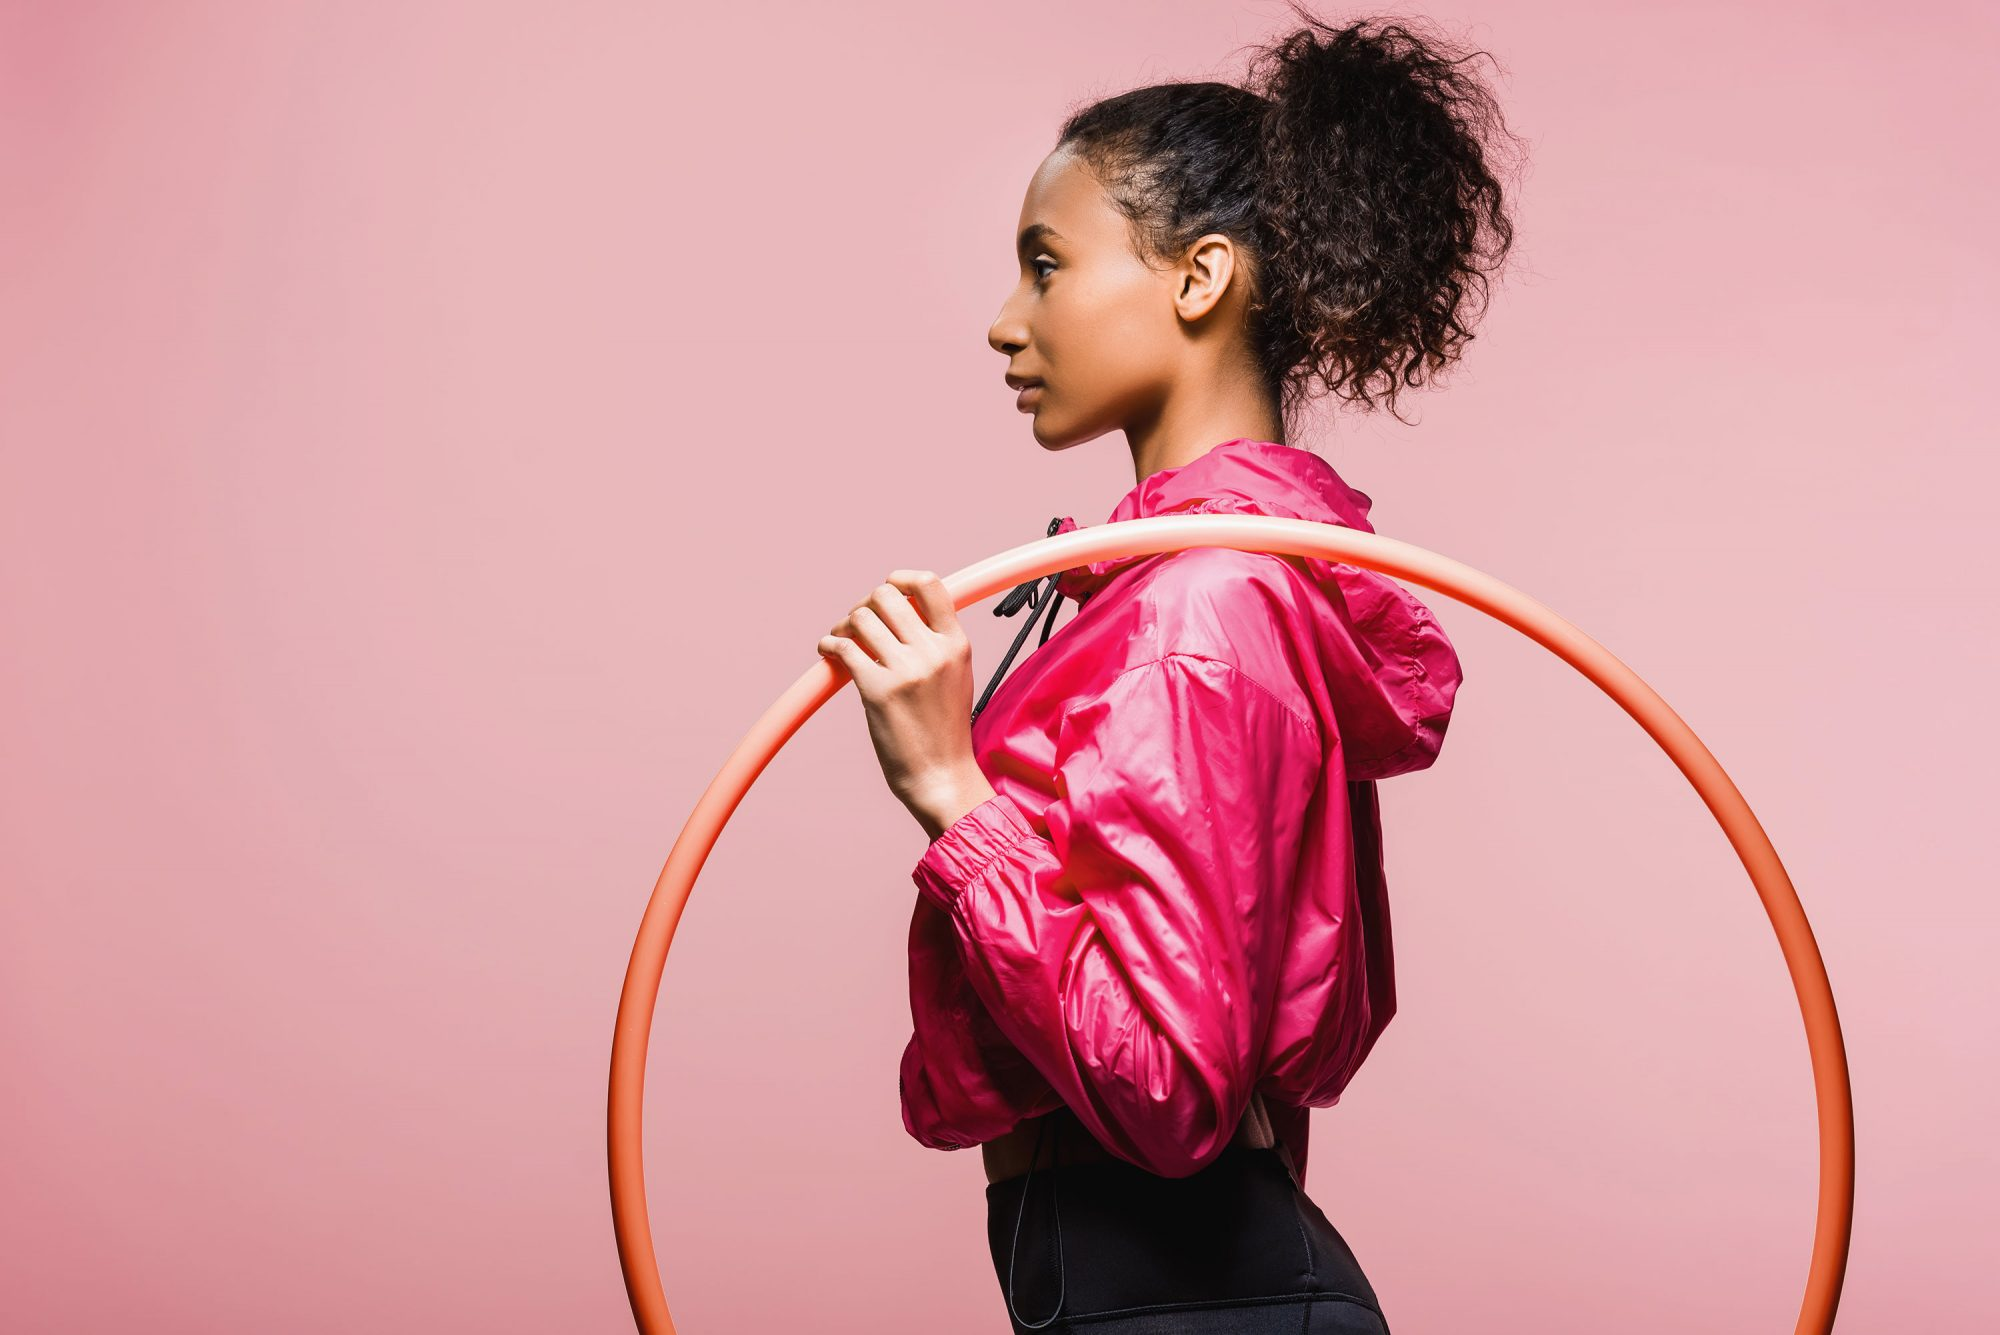 Here's What You Need to Know About the Weighted Hula Hoop Trend